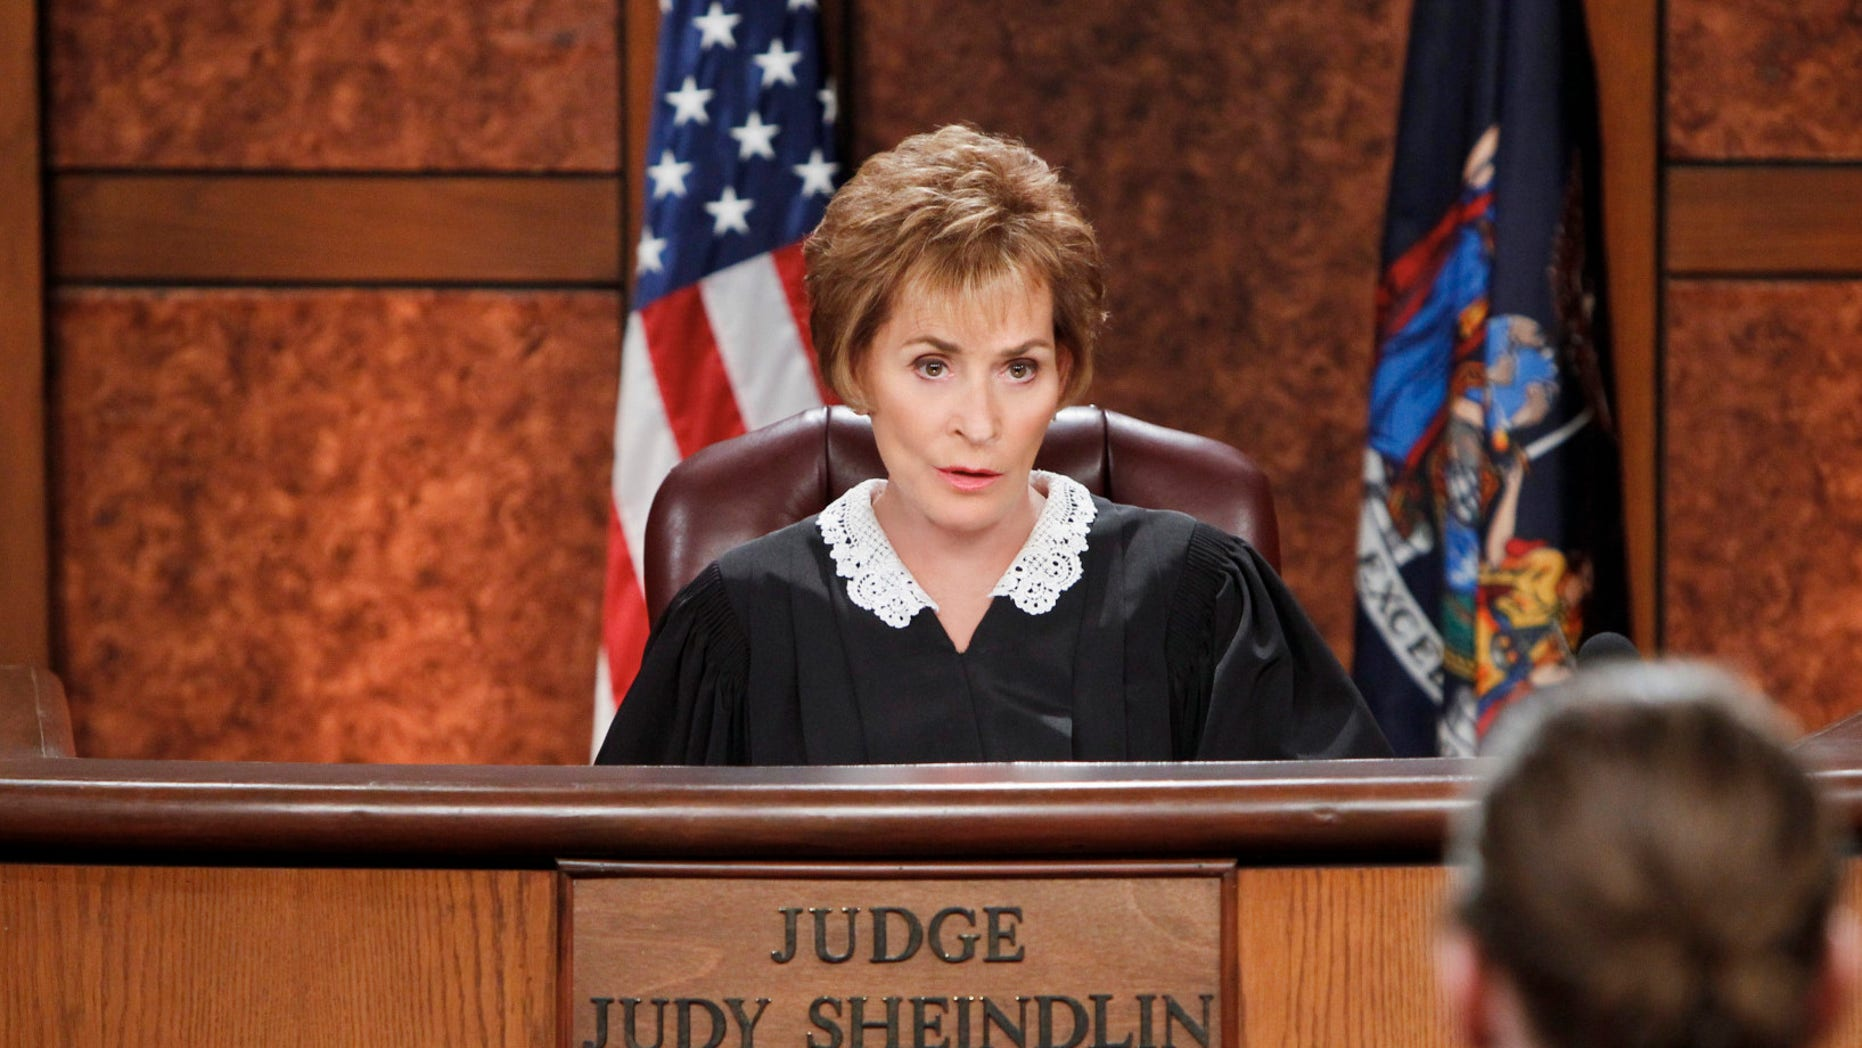 Judge Judy is the highest paid TV host of 2018.